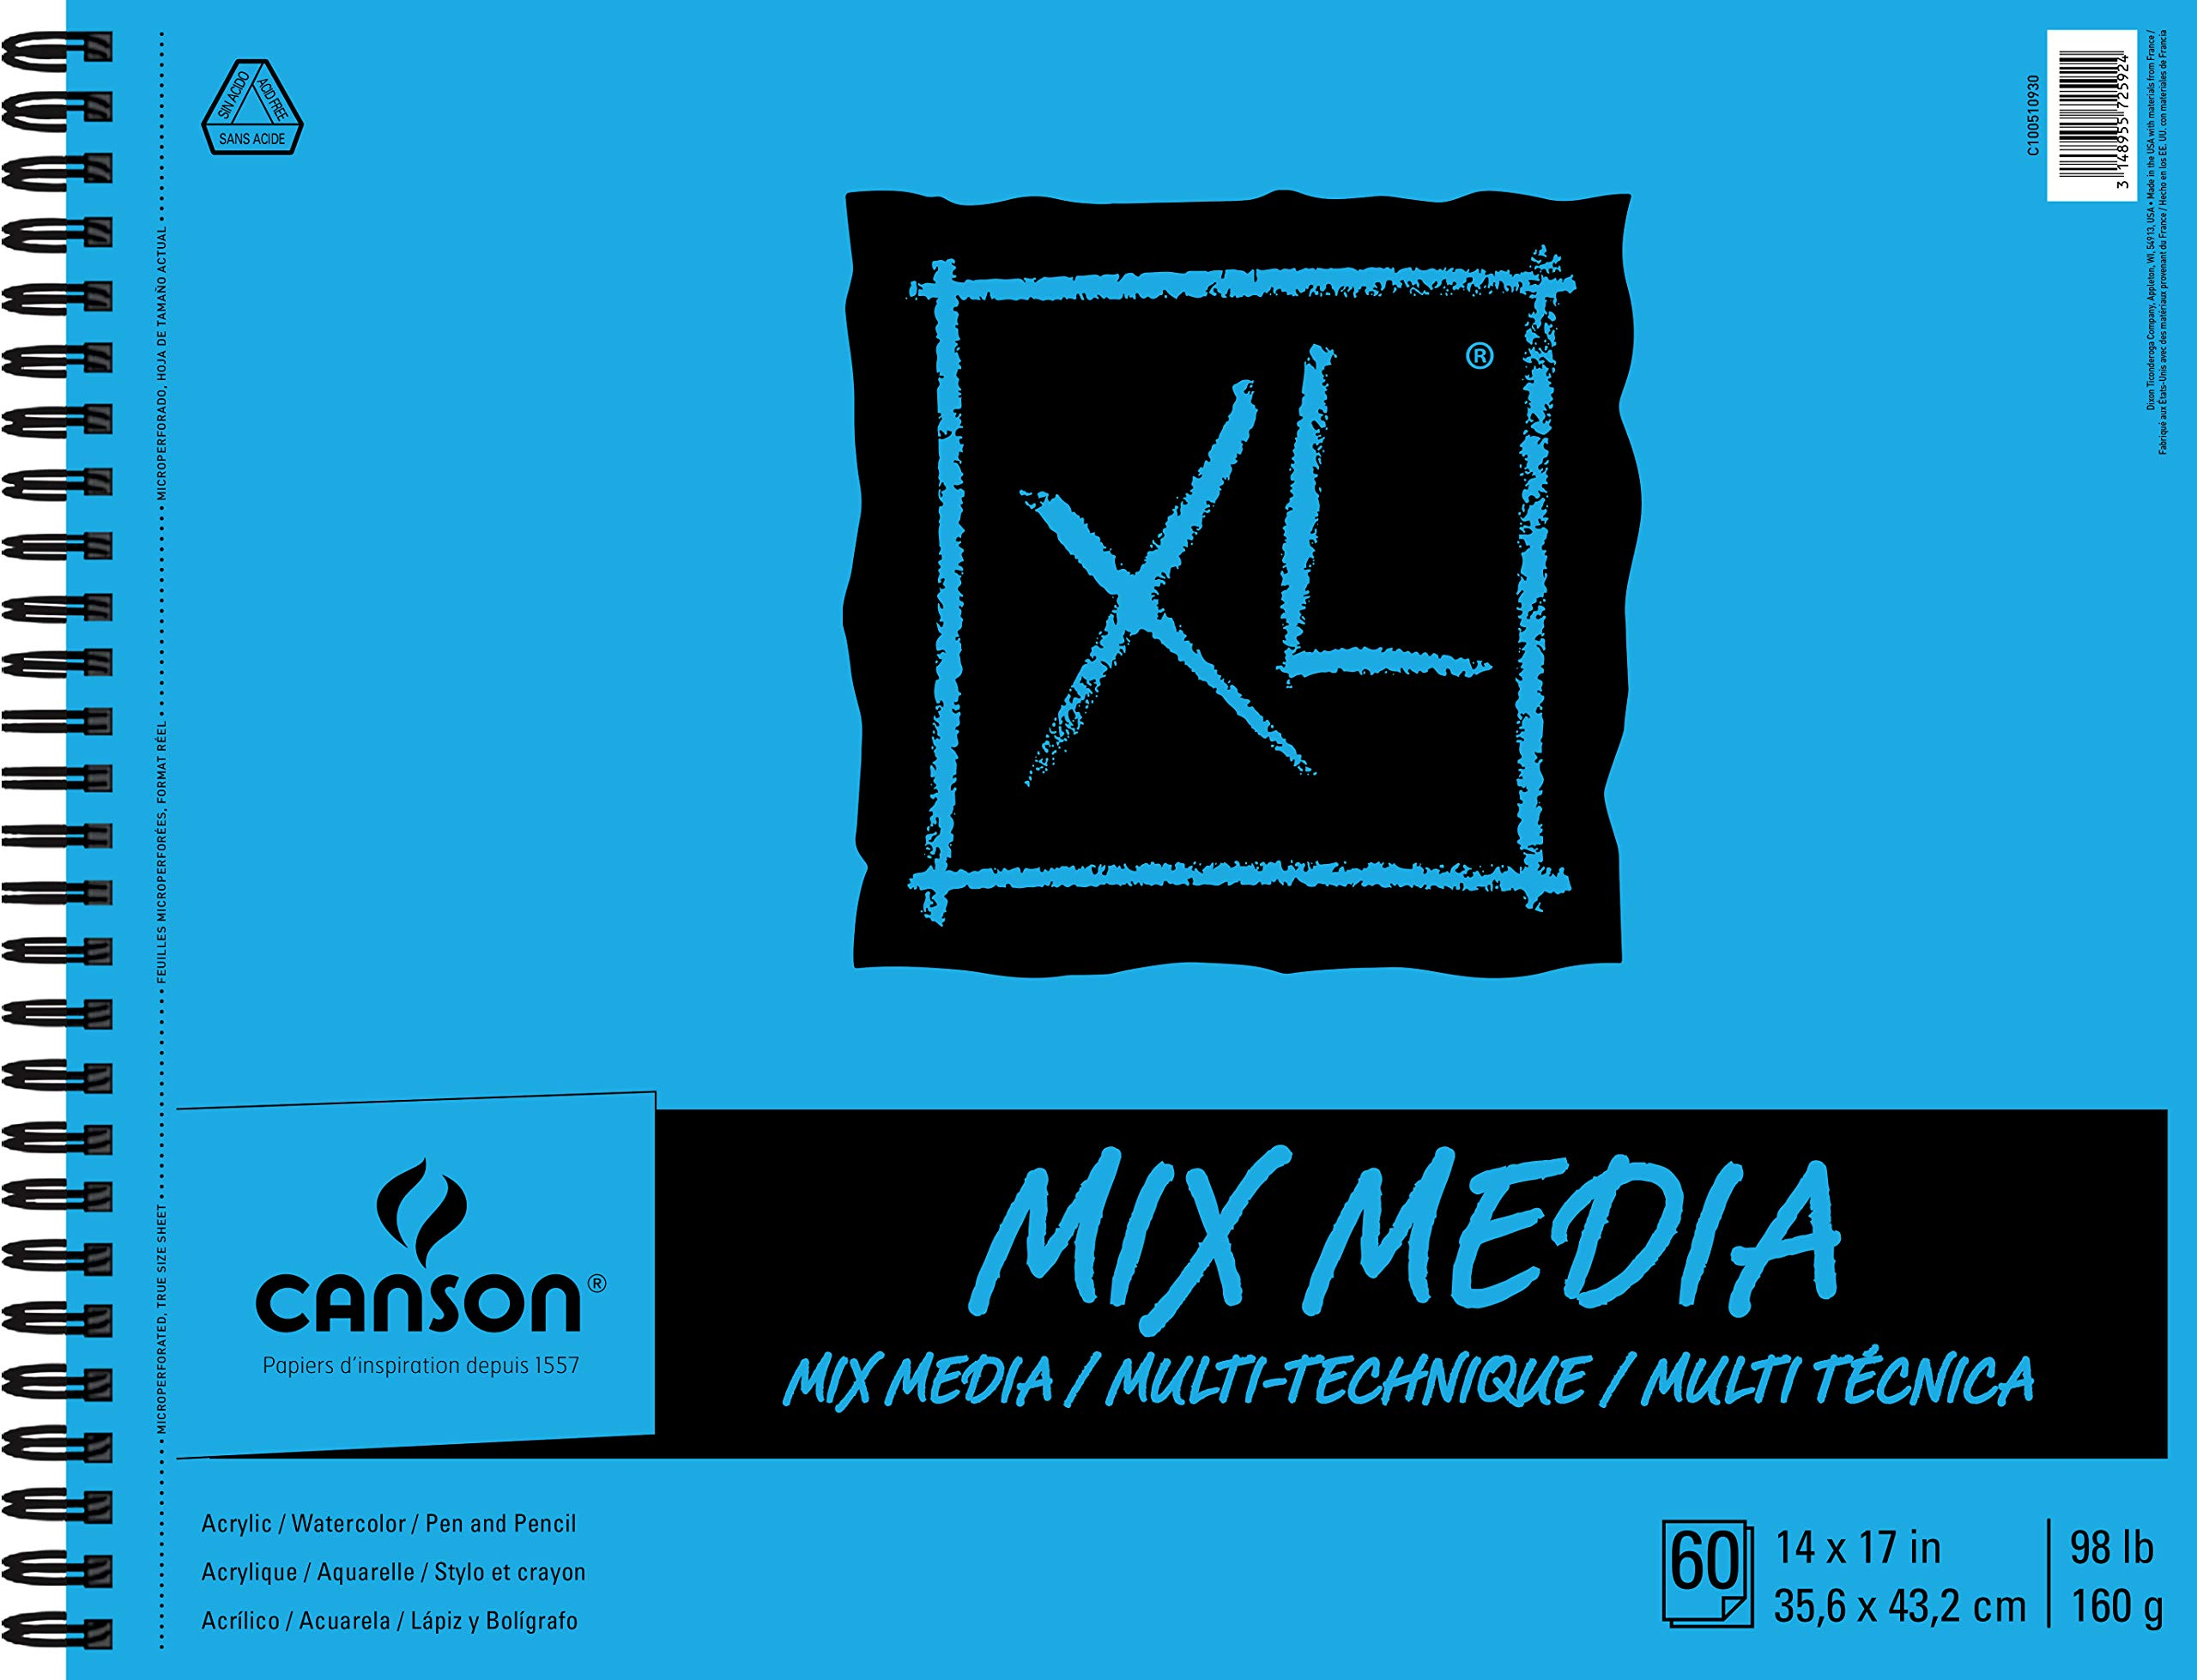 """Canson XL Series Mix Paper Pad, Heavyweight, Fine Texture, Heavy Sizing for Wet and Dry Media, Side Wire Bound, 98 Pound, 14 x 17 in, 60 Sheets, 14""""X17"""", 0"""